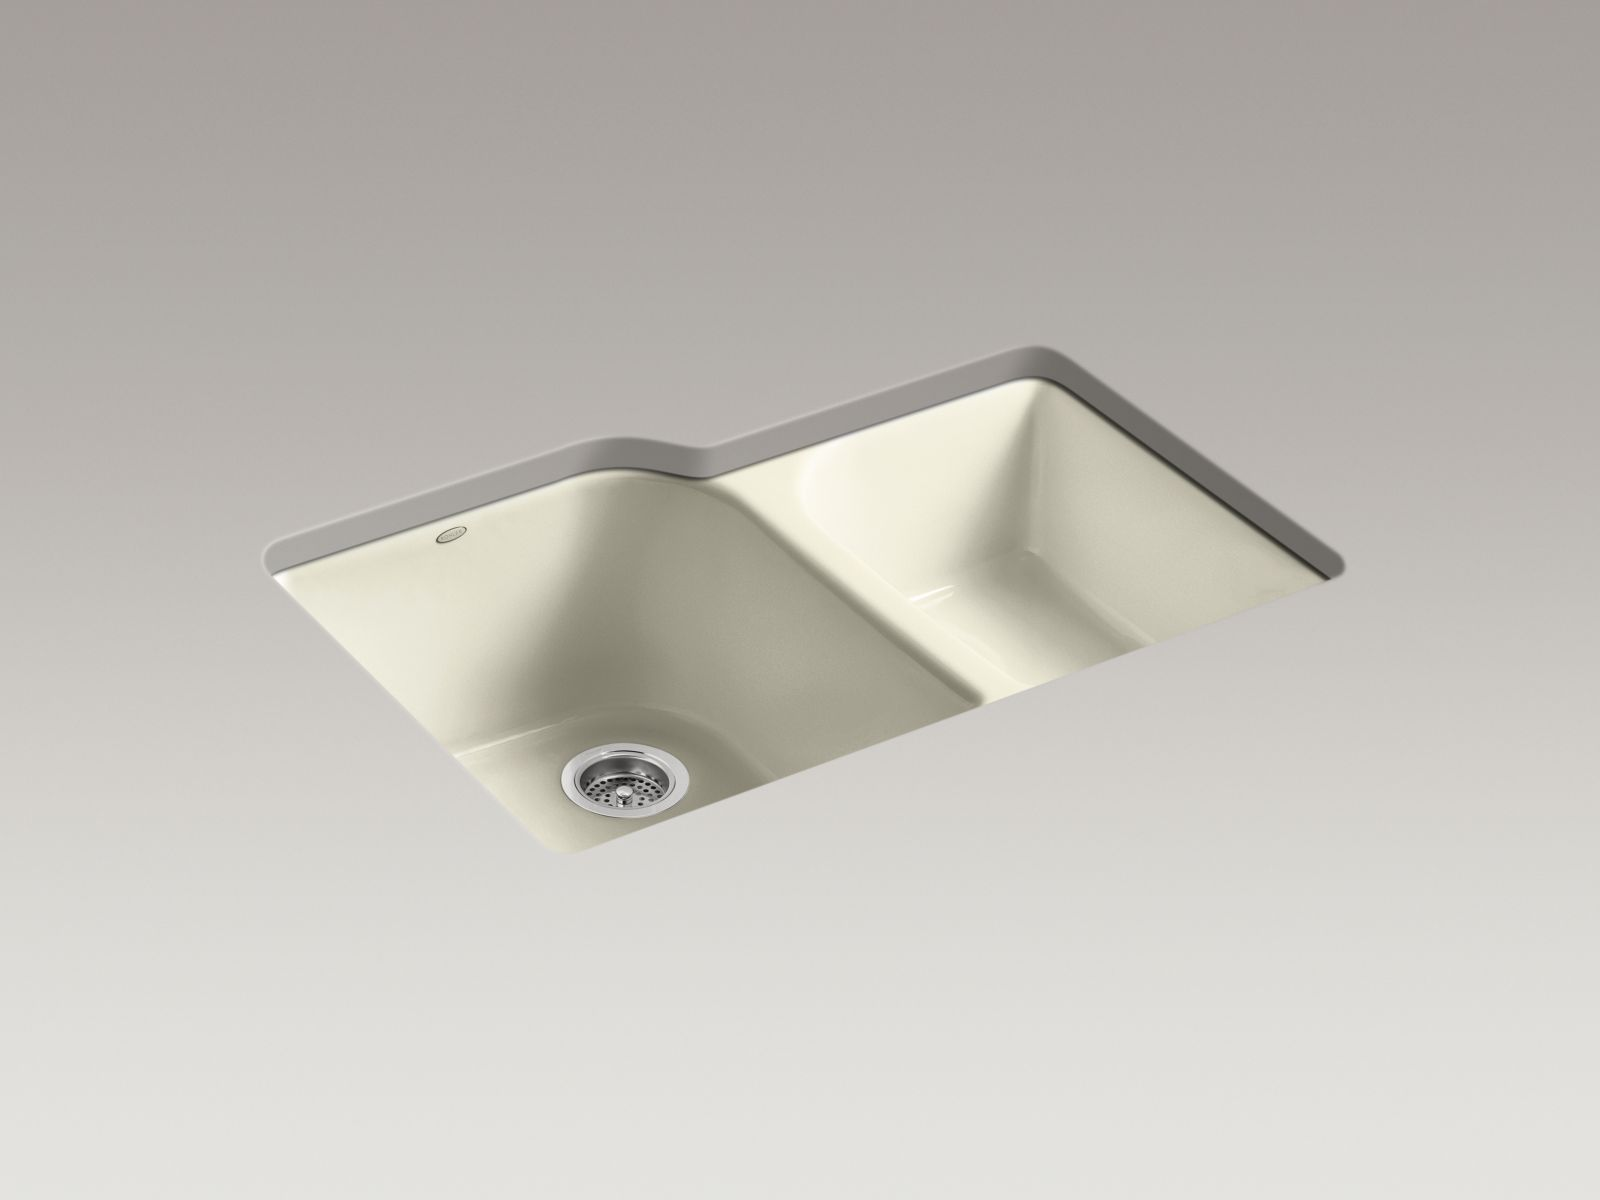 Kohler K-5931-4U-FD Executive Chef Undermount Deep and Shallow Bowl Kitchen Sink with 4 Faucet Holes Cane Sugar